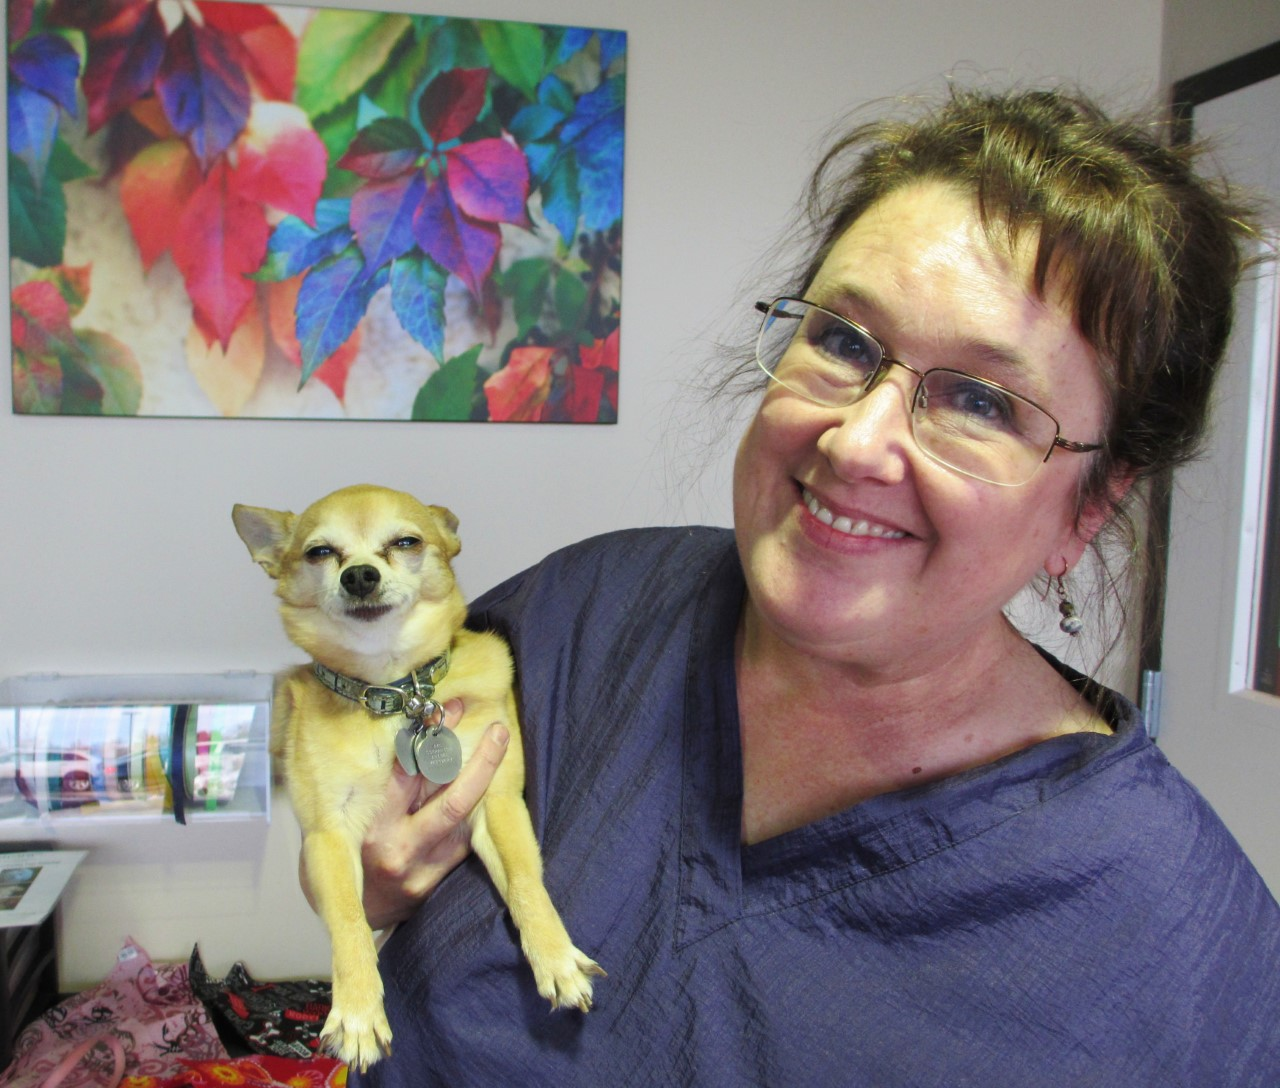 Woman with glasses holds small dog